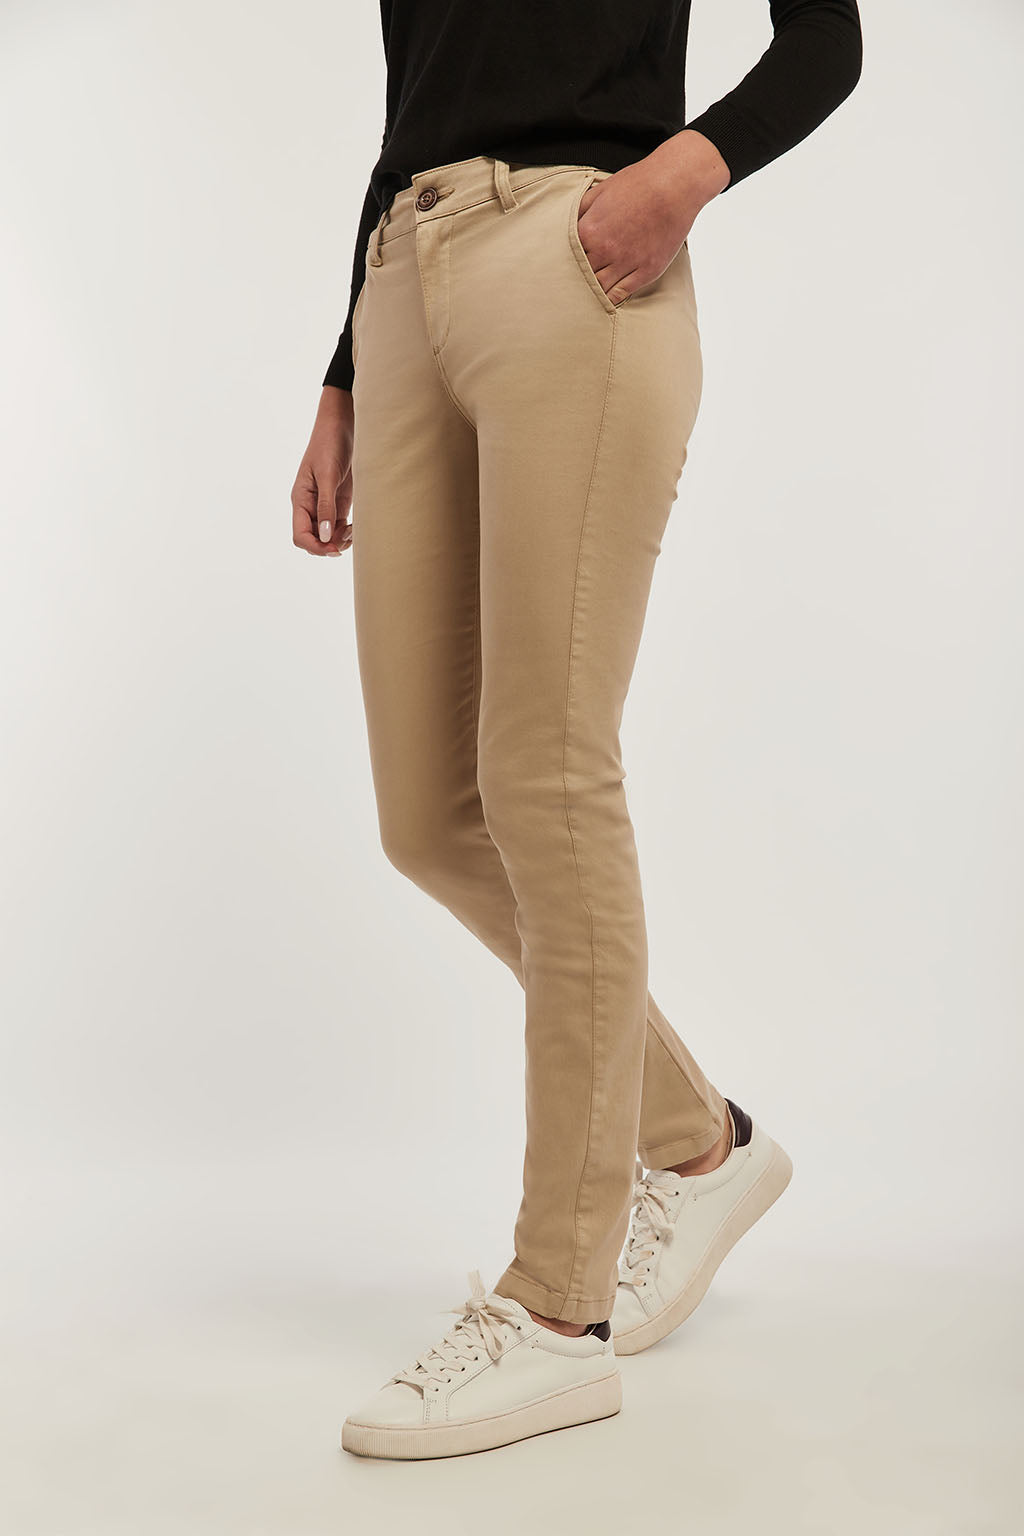 Beige slim-fit chinos with matching embroidery